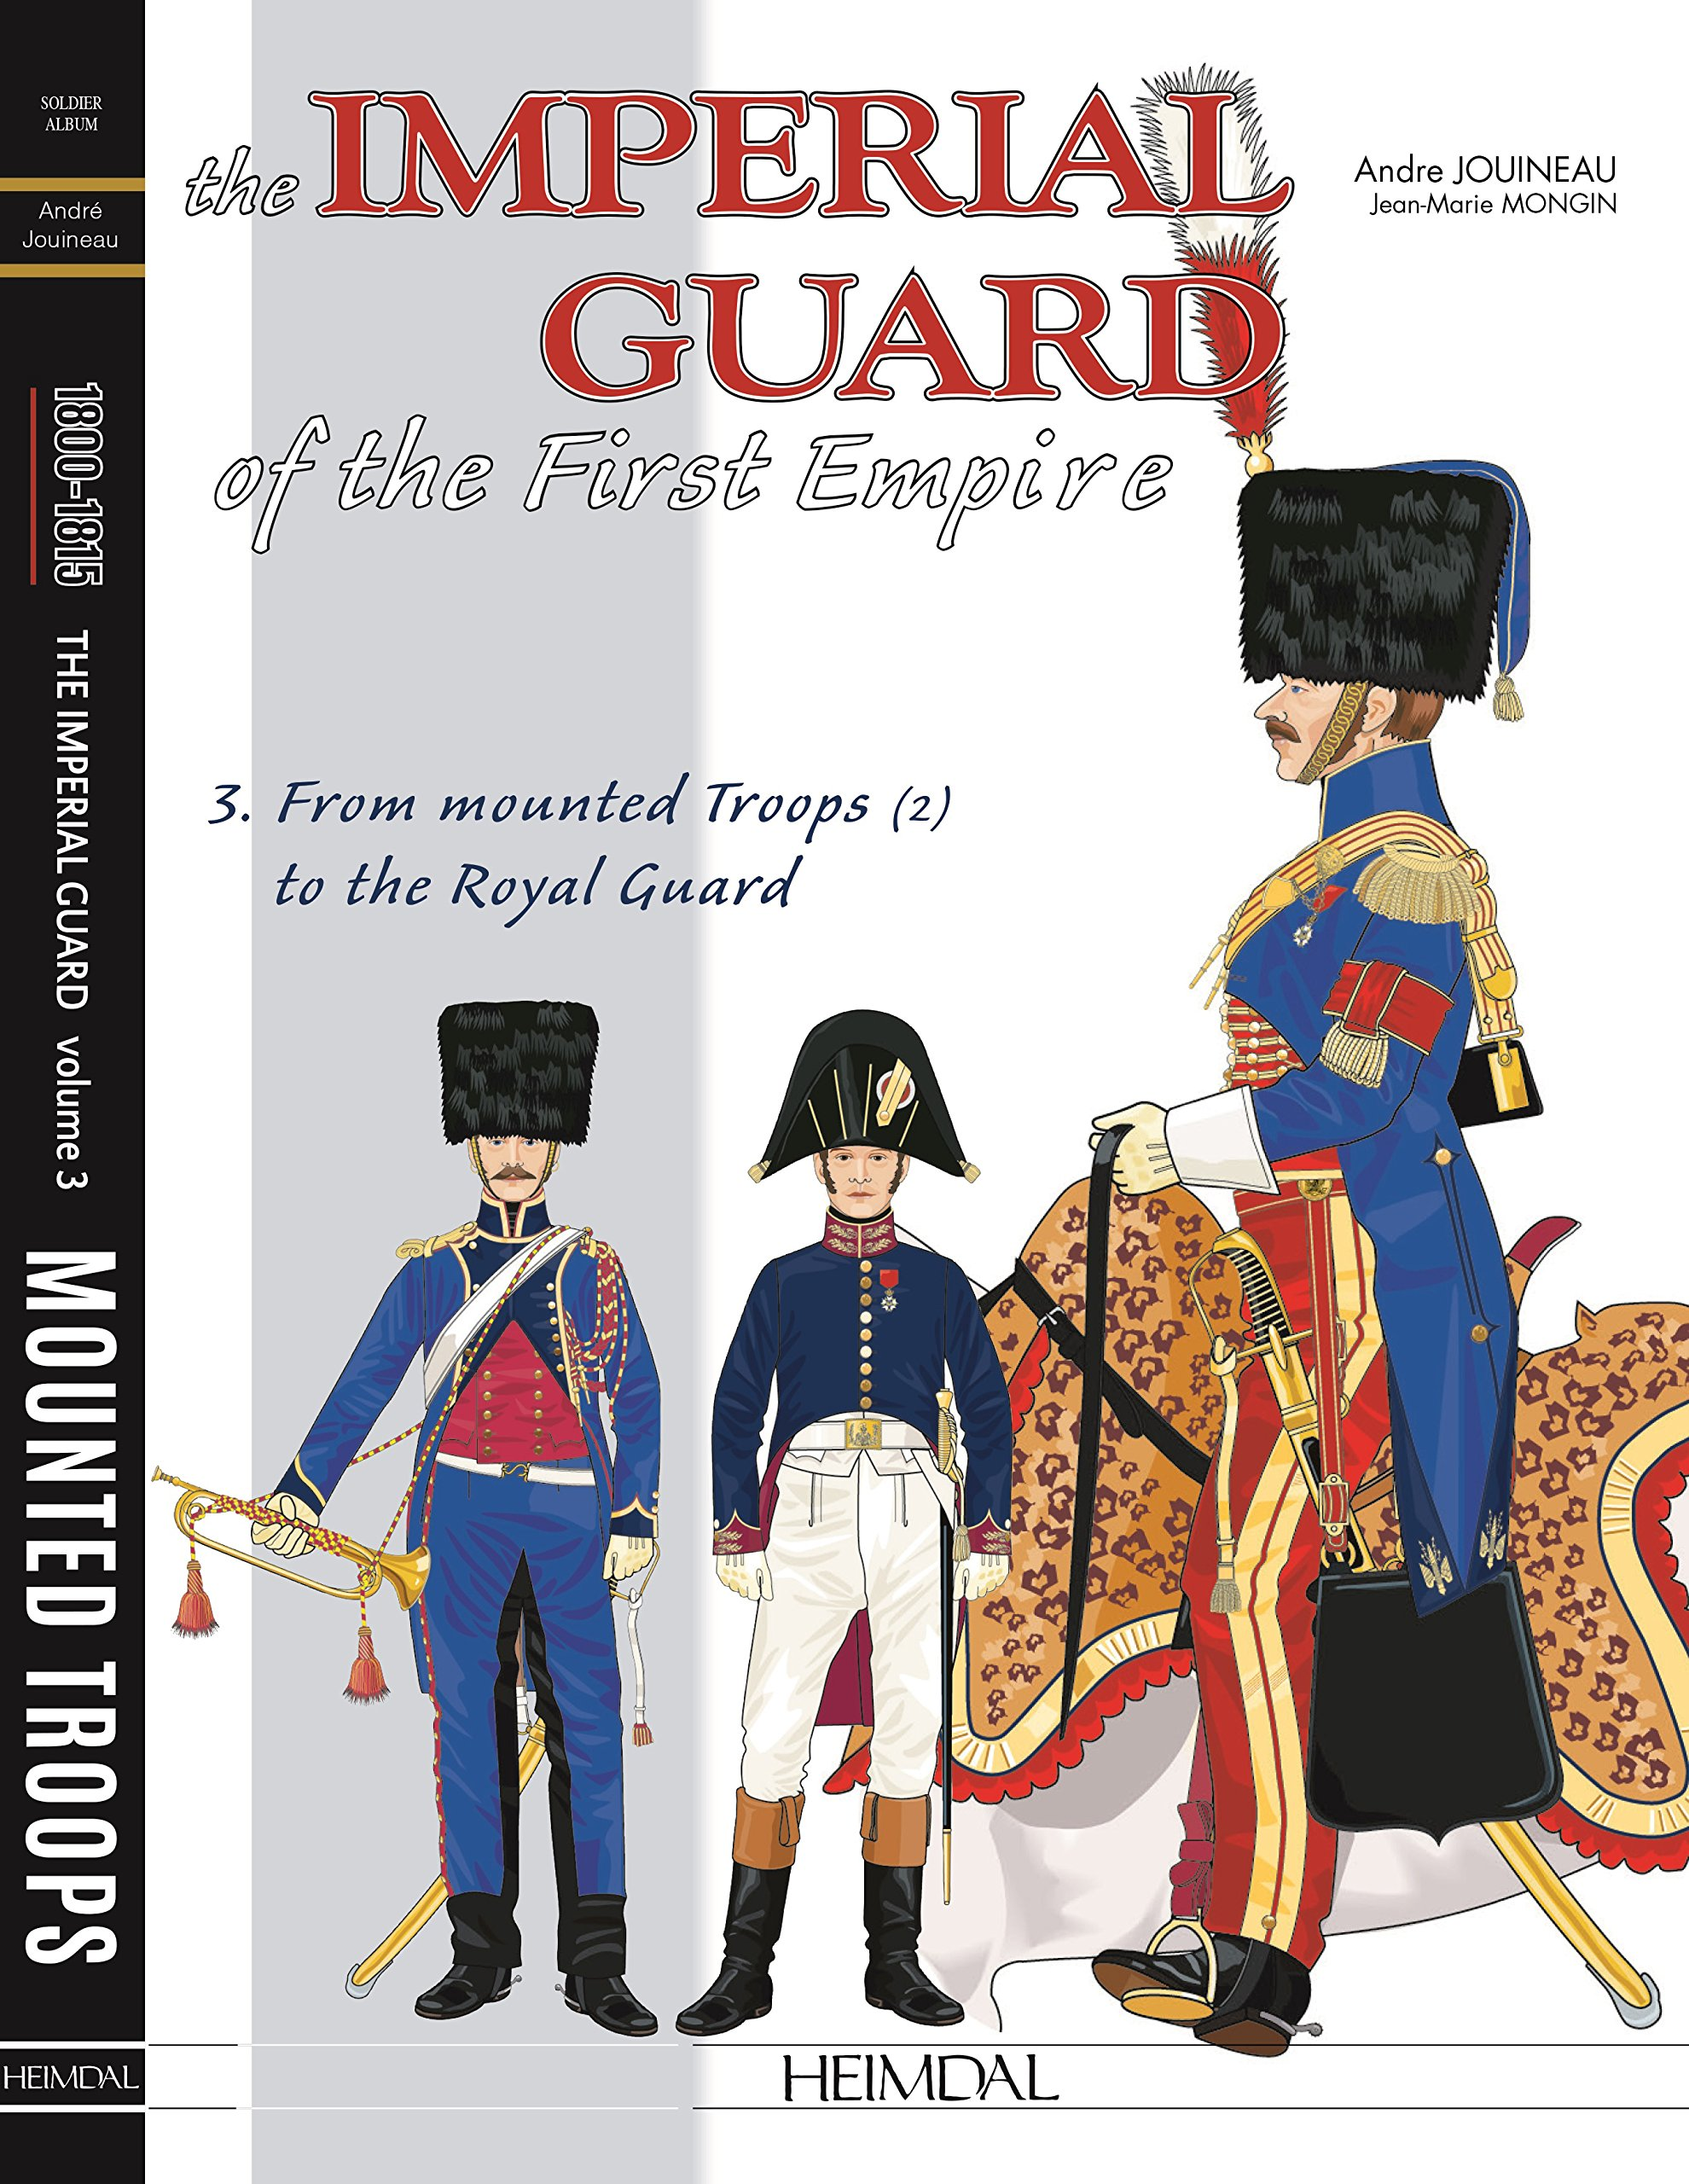 The Imperial Guard of the First Empire. Volume 3: From the mounted troops to the Royal Guard